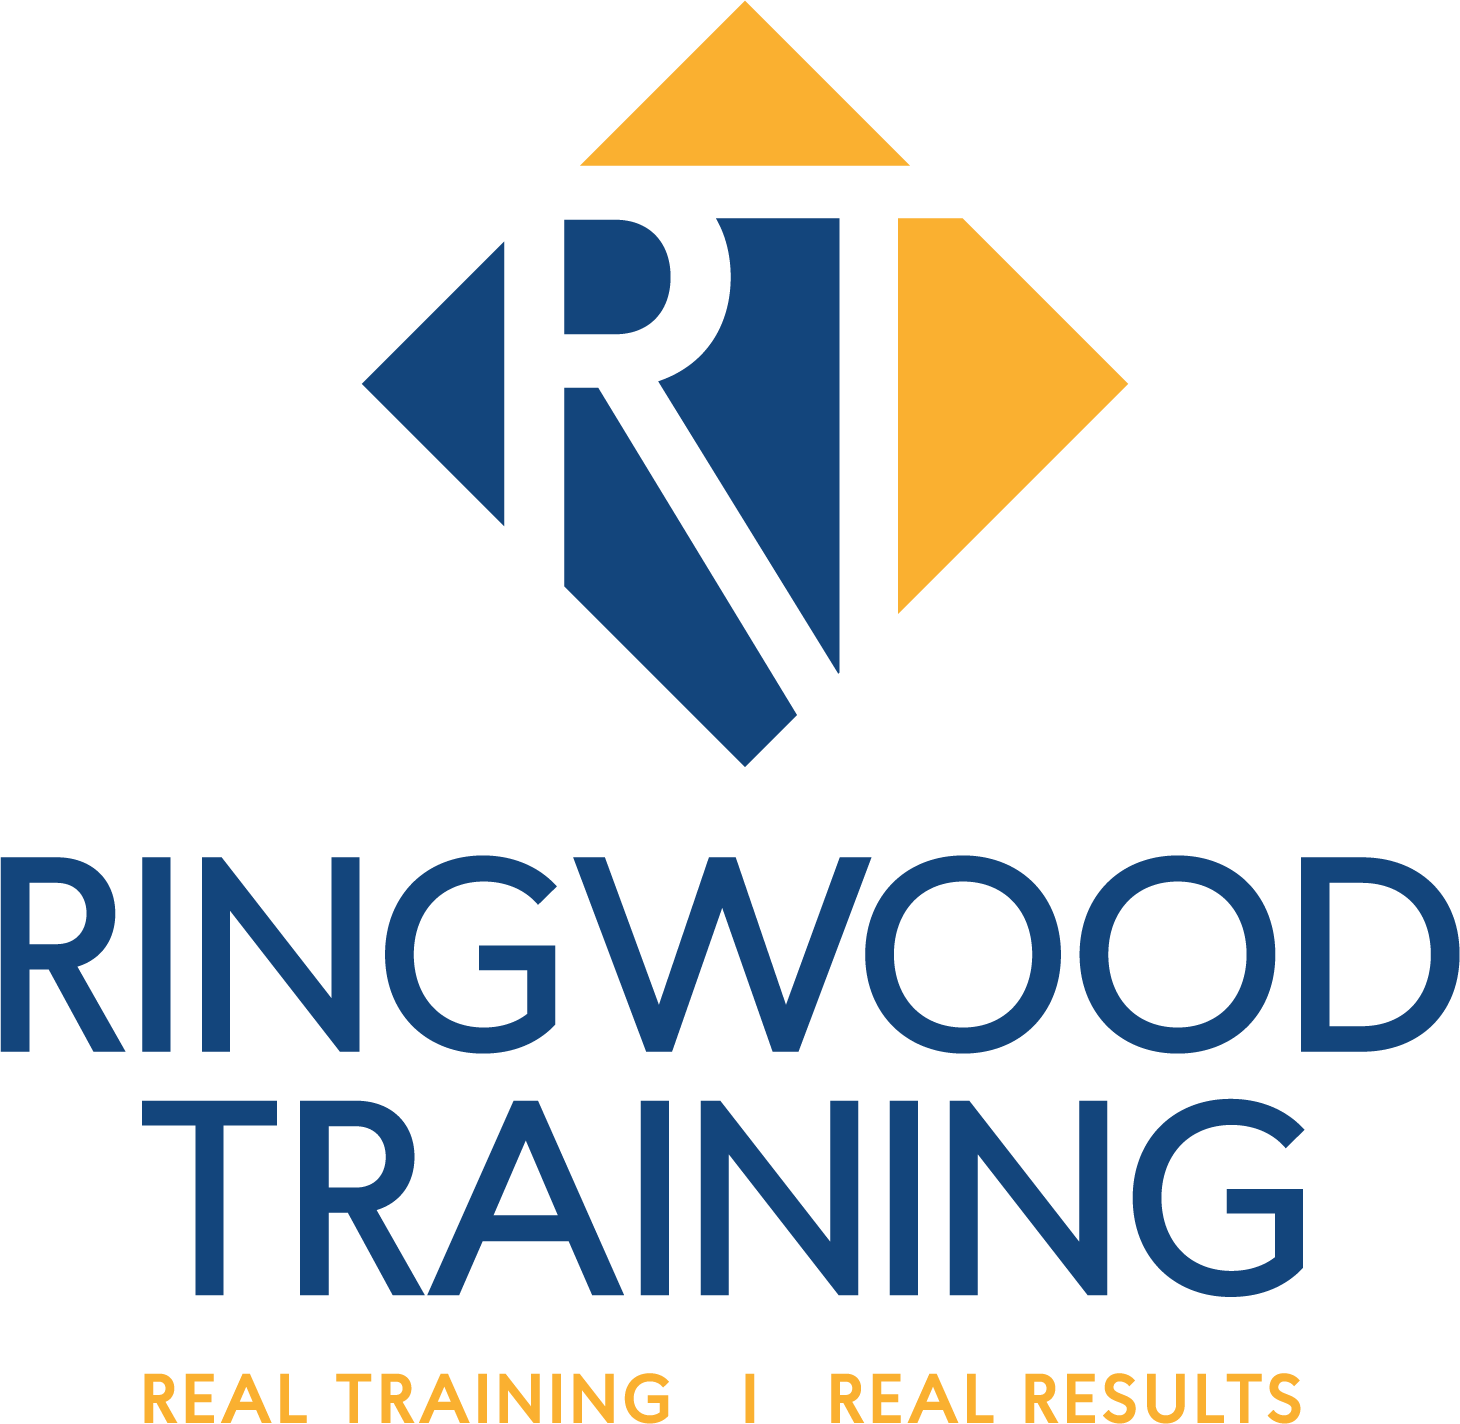 News - Ringwood Training - RT